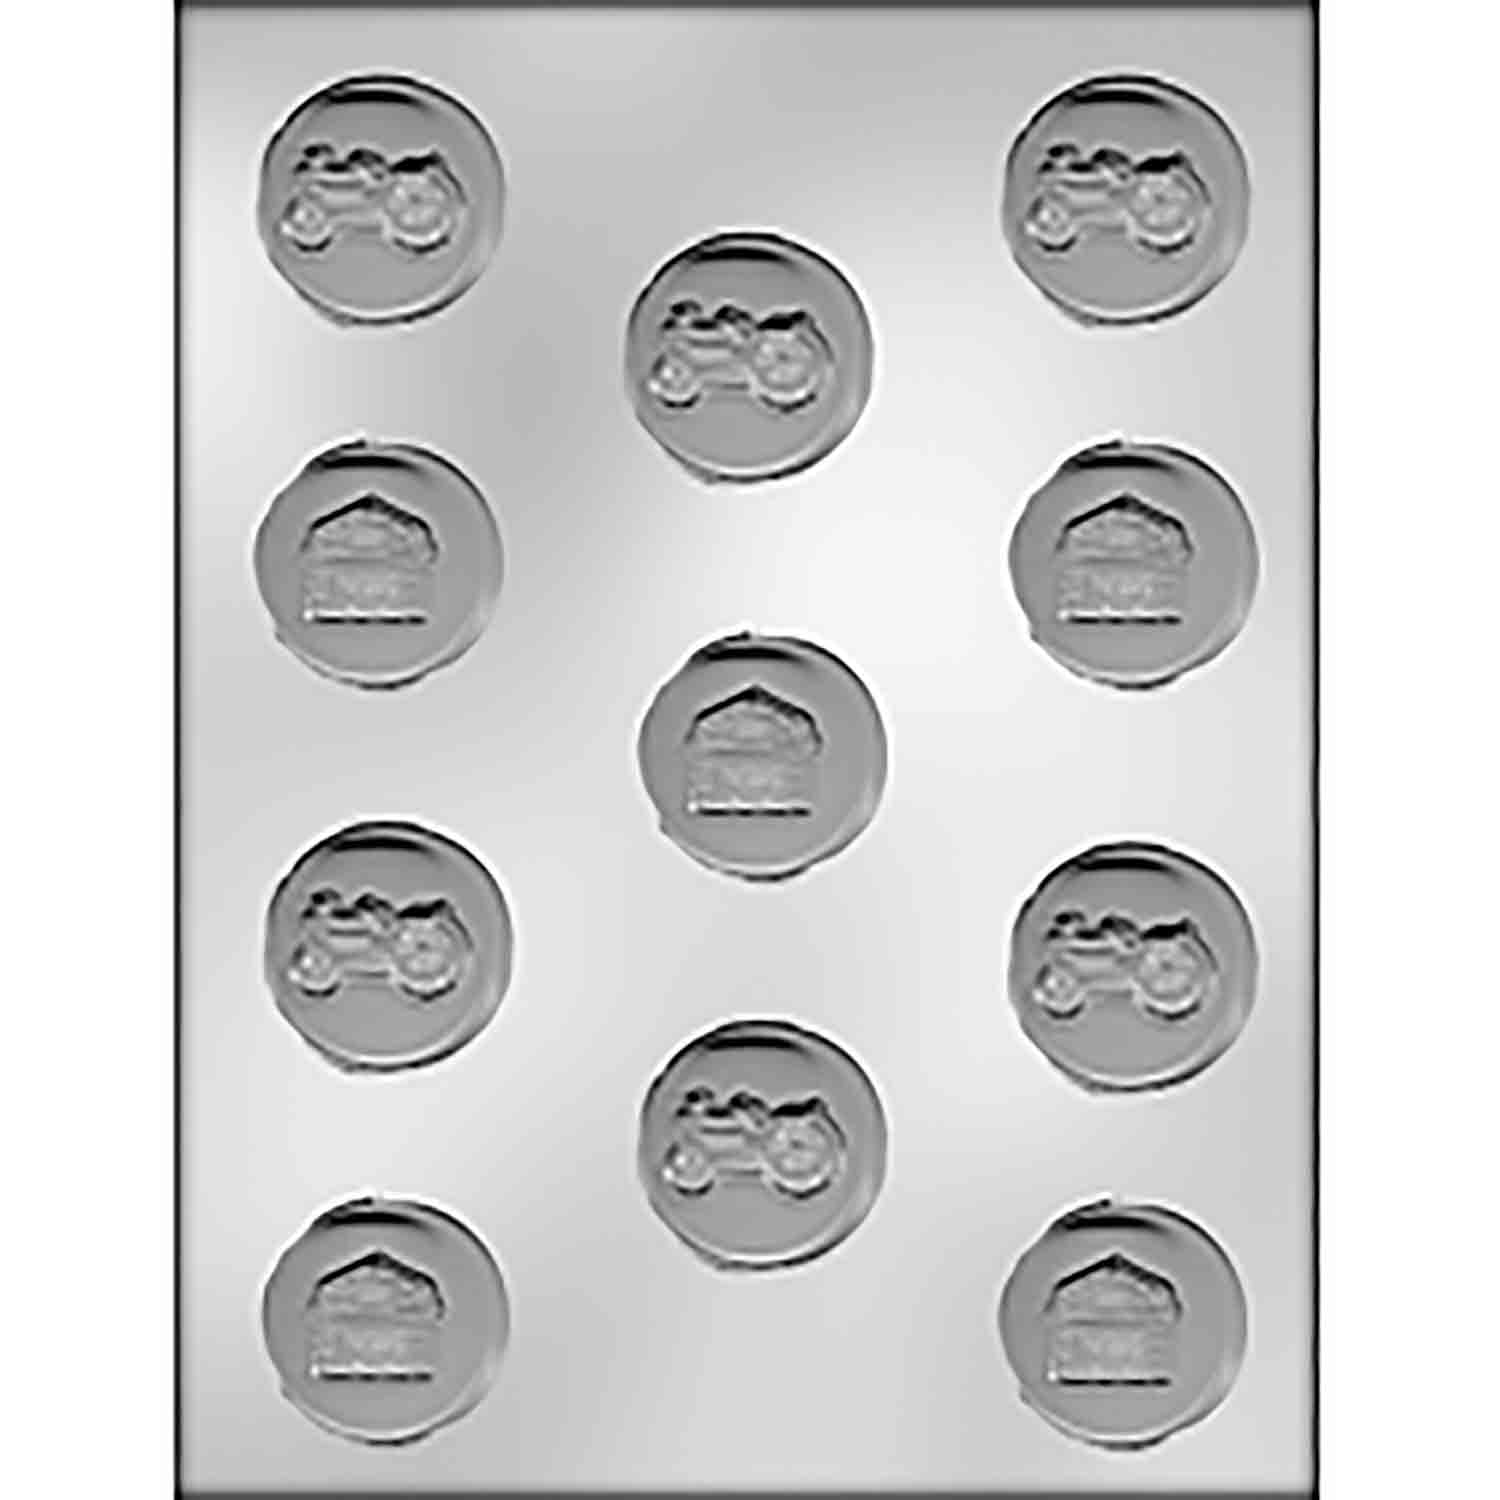 Tractor/Barn on Circle Chocolate Candy Mold